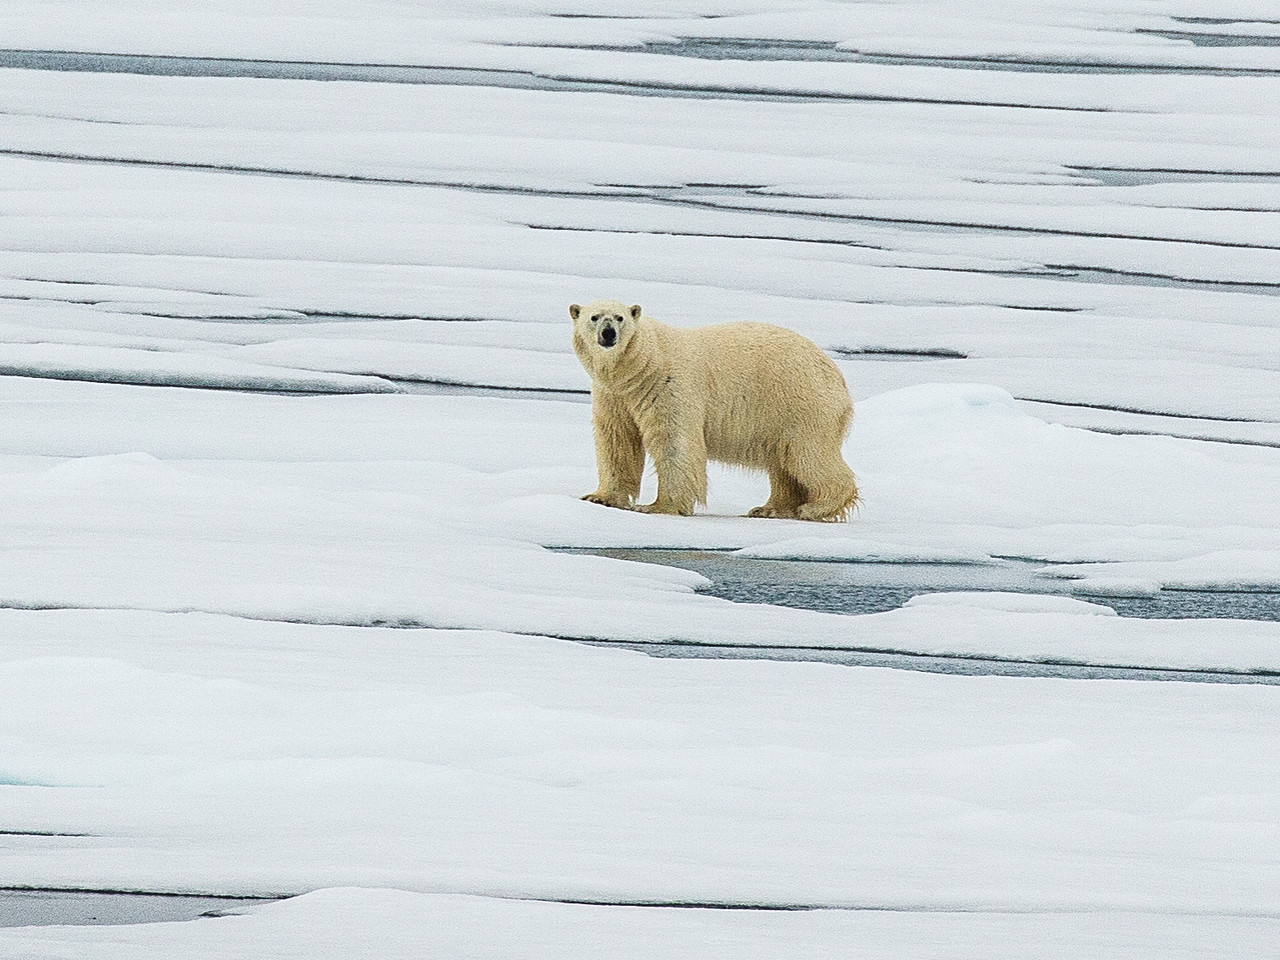 Boomer travel - wildlife - On an Arctic expedition cruise, boomer travelers go looking for polar bear.